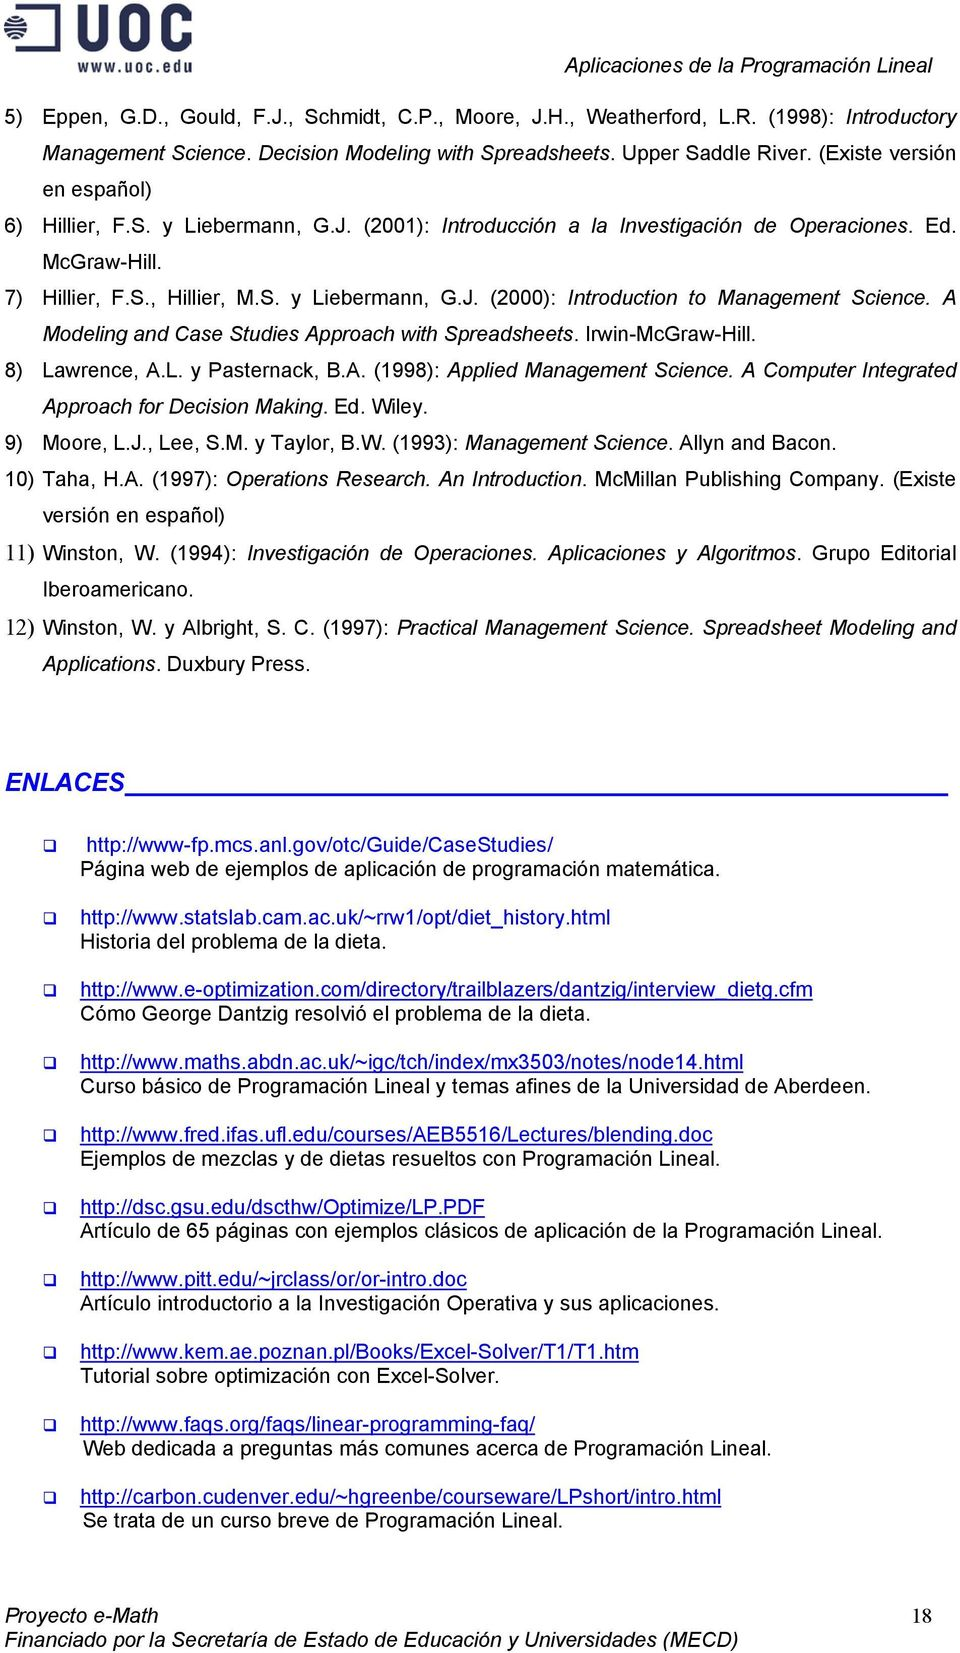 A Modeling and Case Studies Approach with Spreadsheets. Irwin-McGraw-Hill. 8) Lawrence, A.L. y Pasternack, B.A. (1998): Applied Management Science. A Computer Integrated Approach for Decision Making.